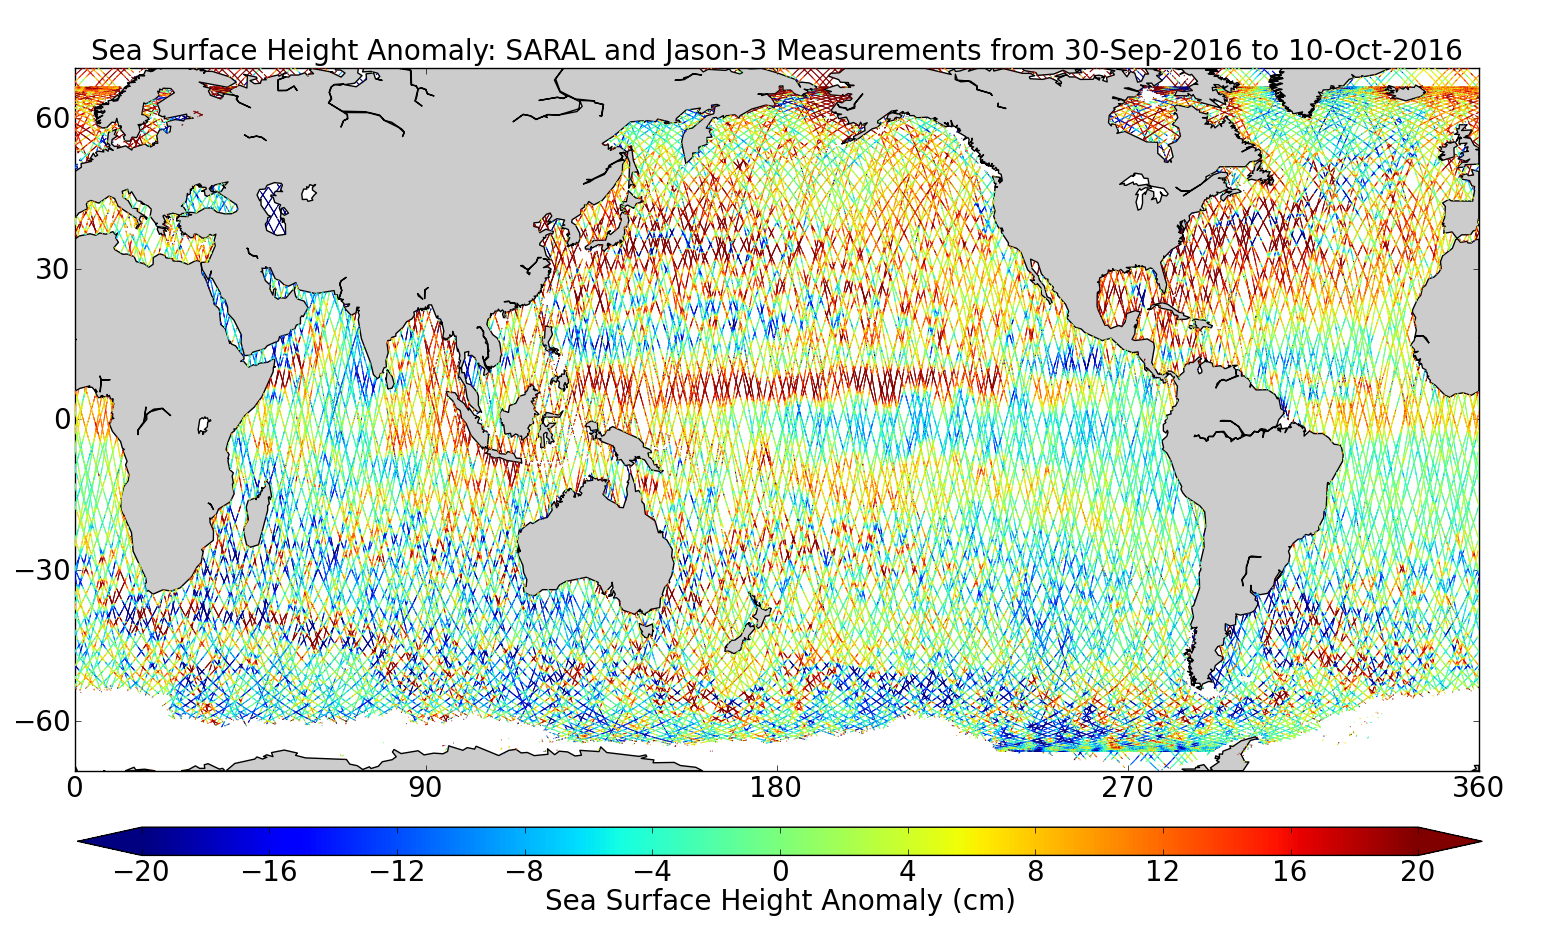 Sea Surface Height Anomaly: SARAL and Jason-3 Measurements from 30-Sep-2016 to 10-Oct-2016